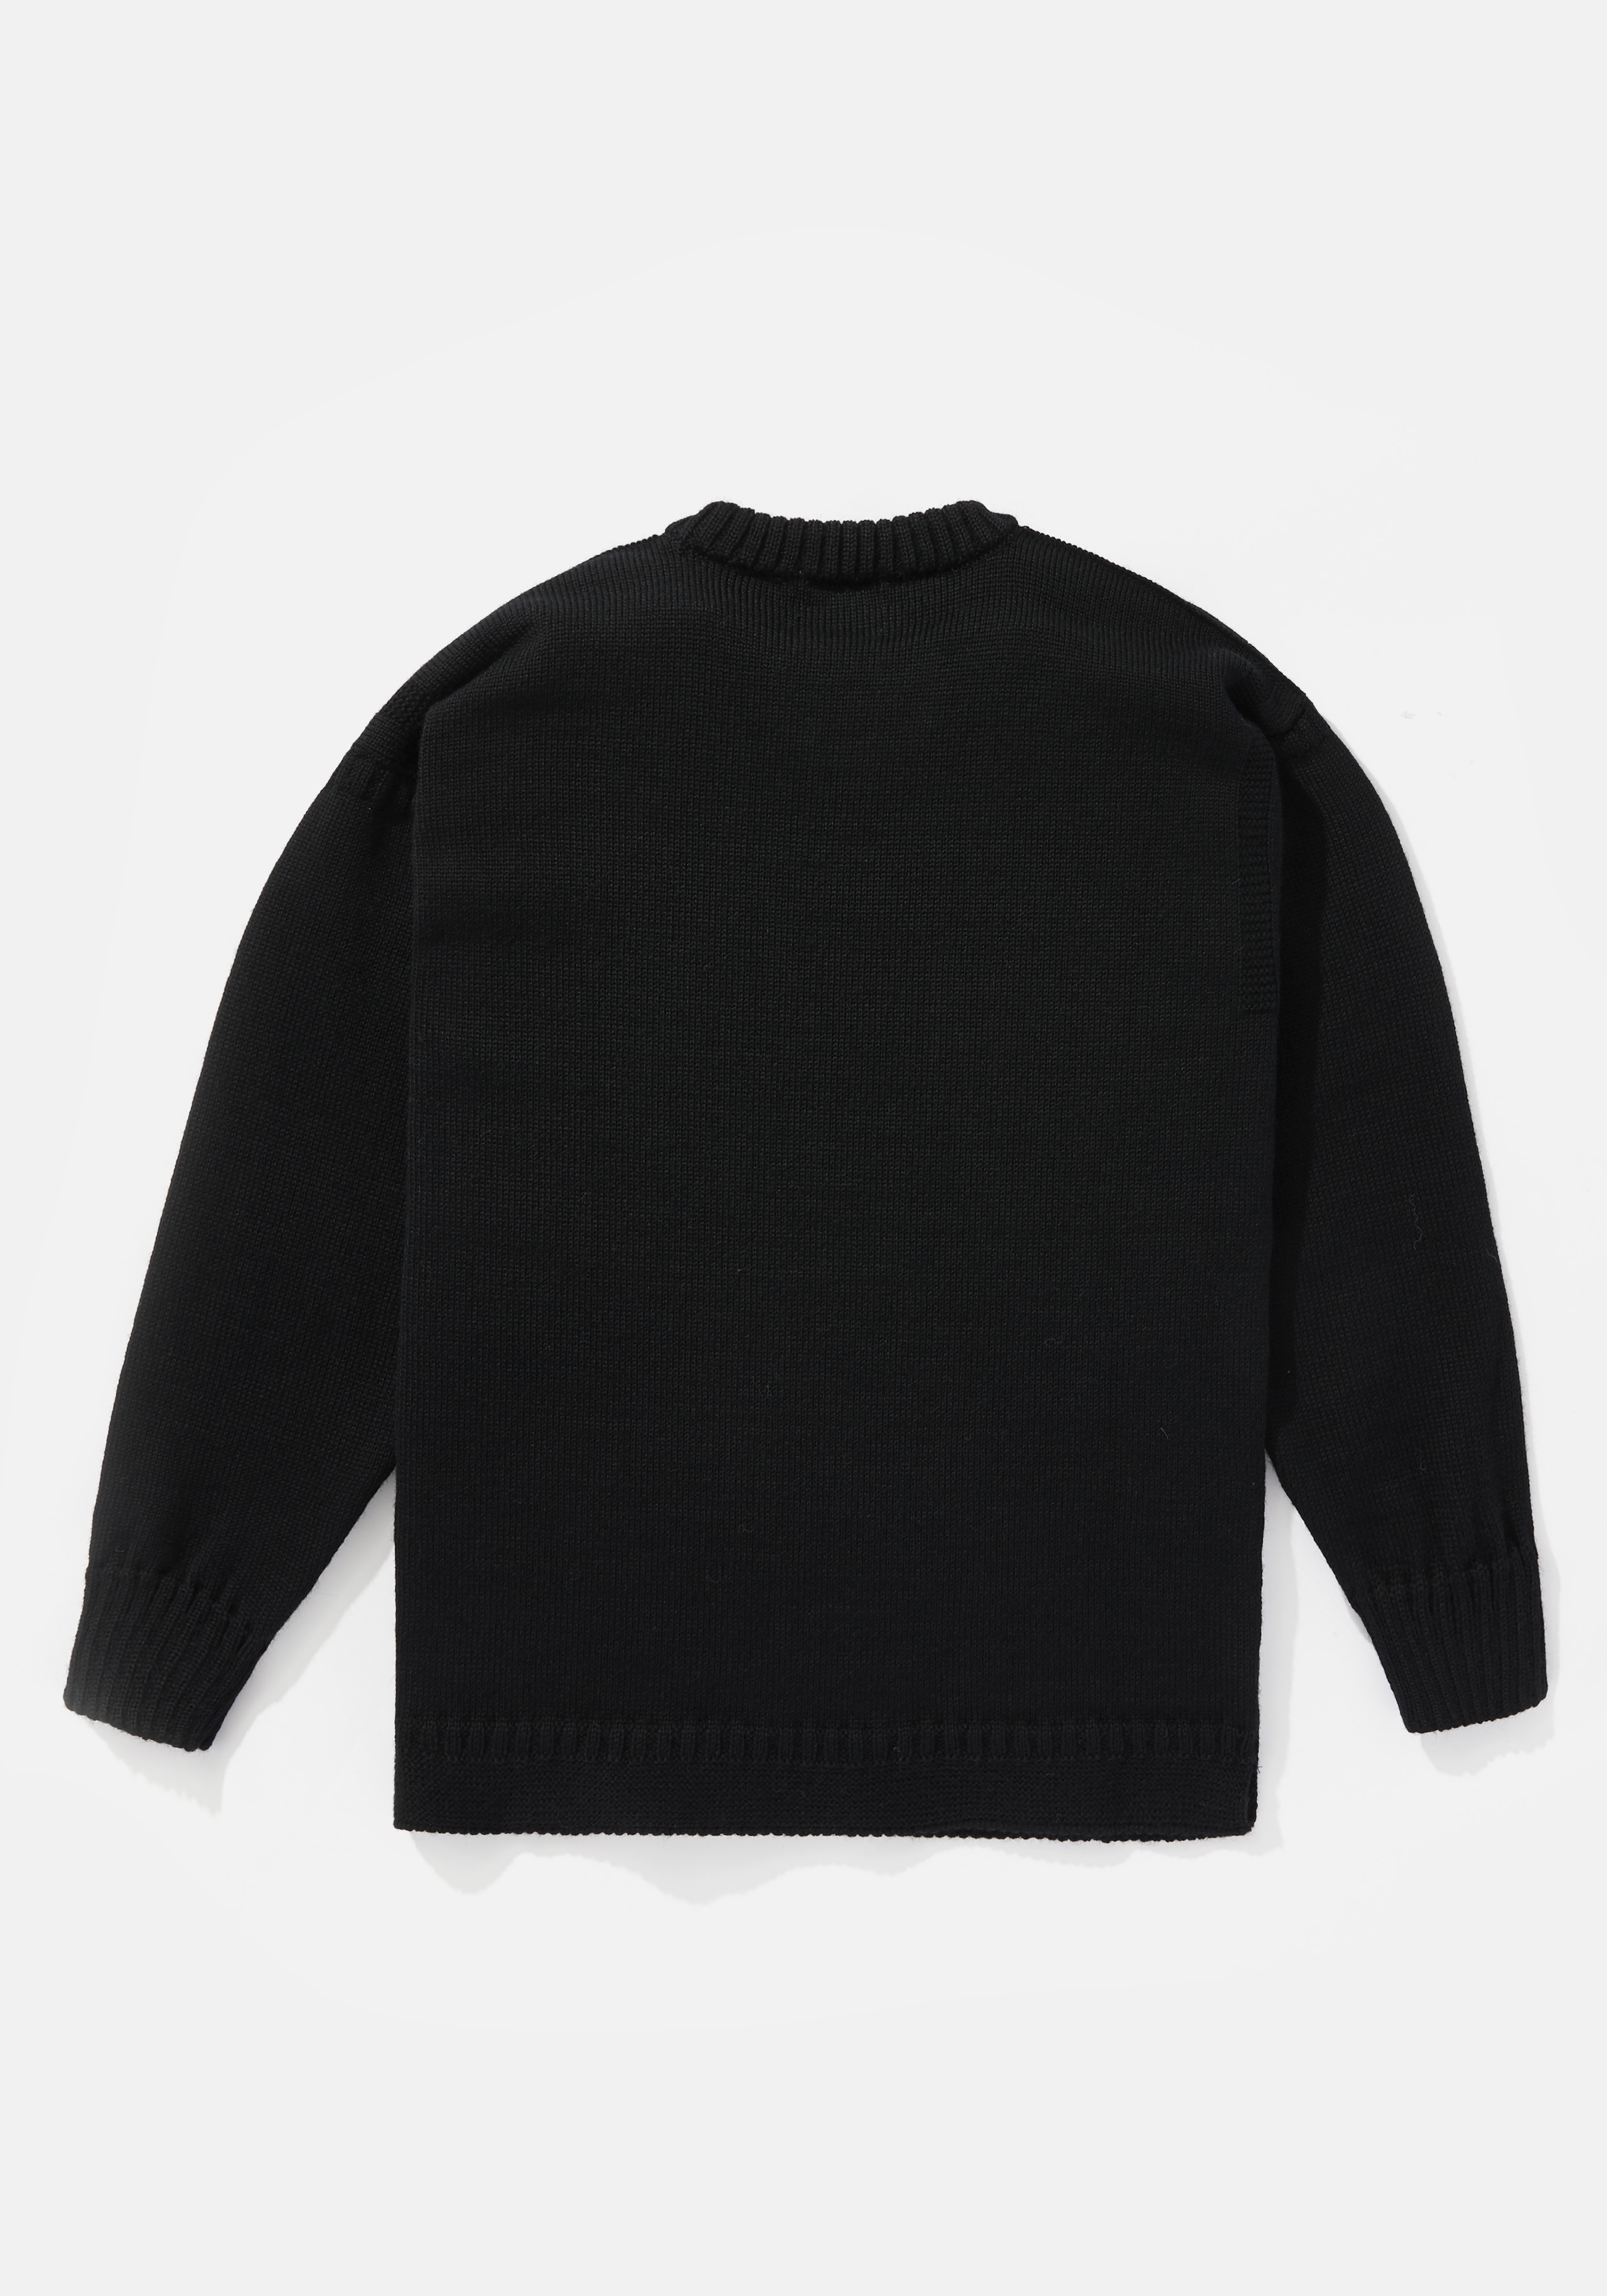 mki crew knit sweater 2